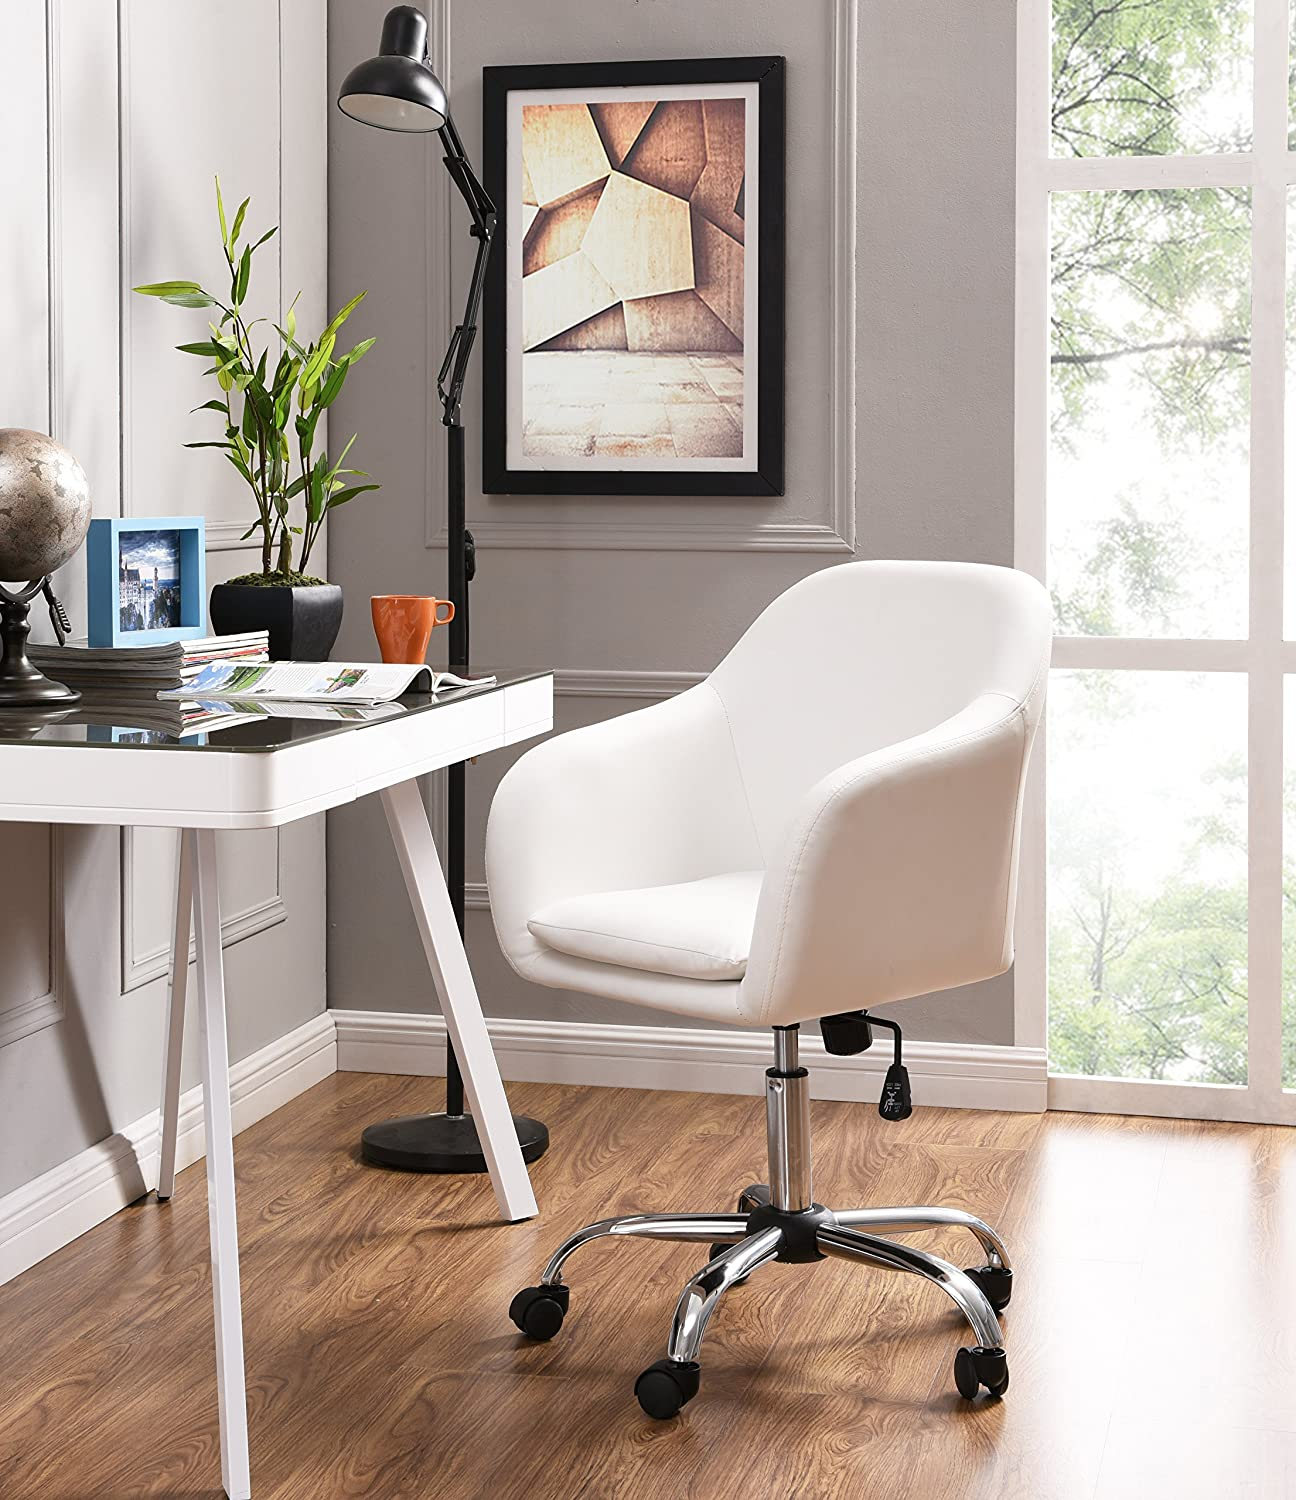 Amazon Com Ids Home Office Chair Executive Mid Back Computer Table Desk Chair Swivel Height Adjustable Ergonomic With Armrest White Furniture Decor